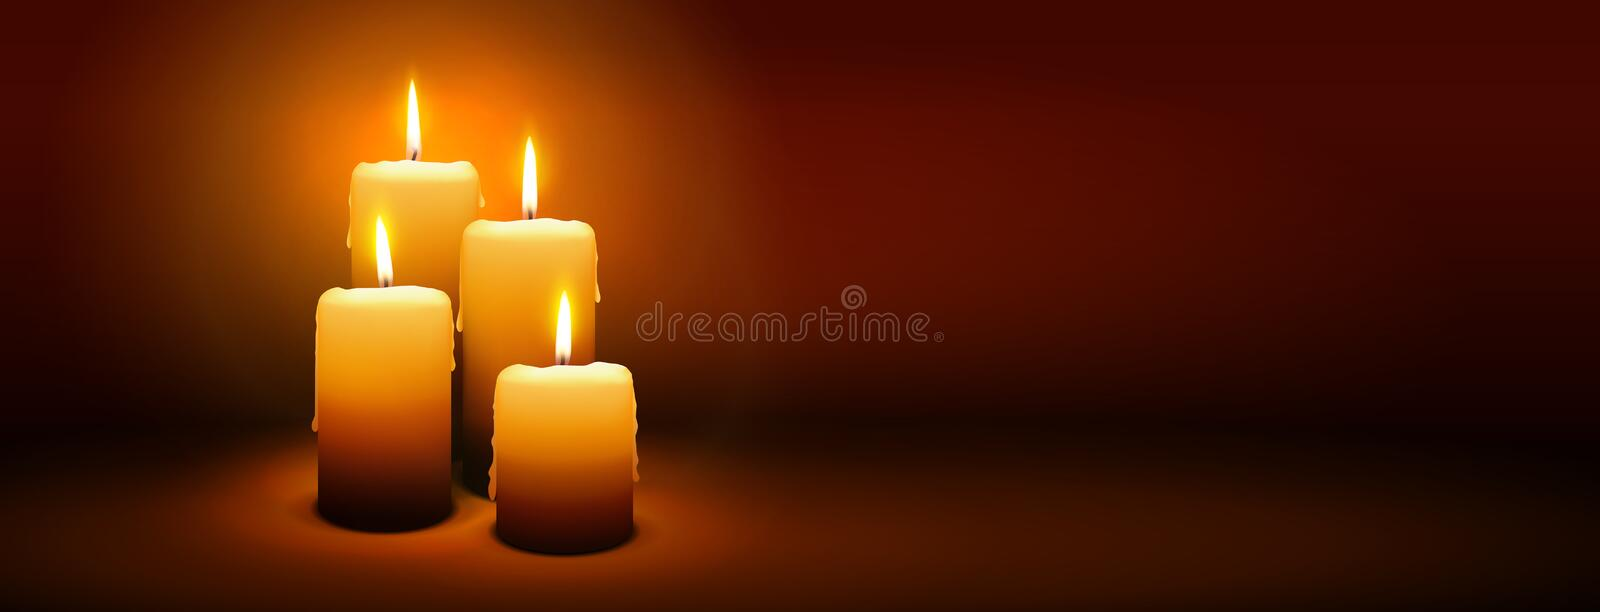 4th Sunday of Advent - Fourth Candle - Candlelight Panorama Banner royalty free stock photos